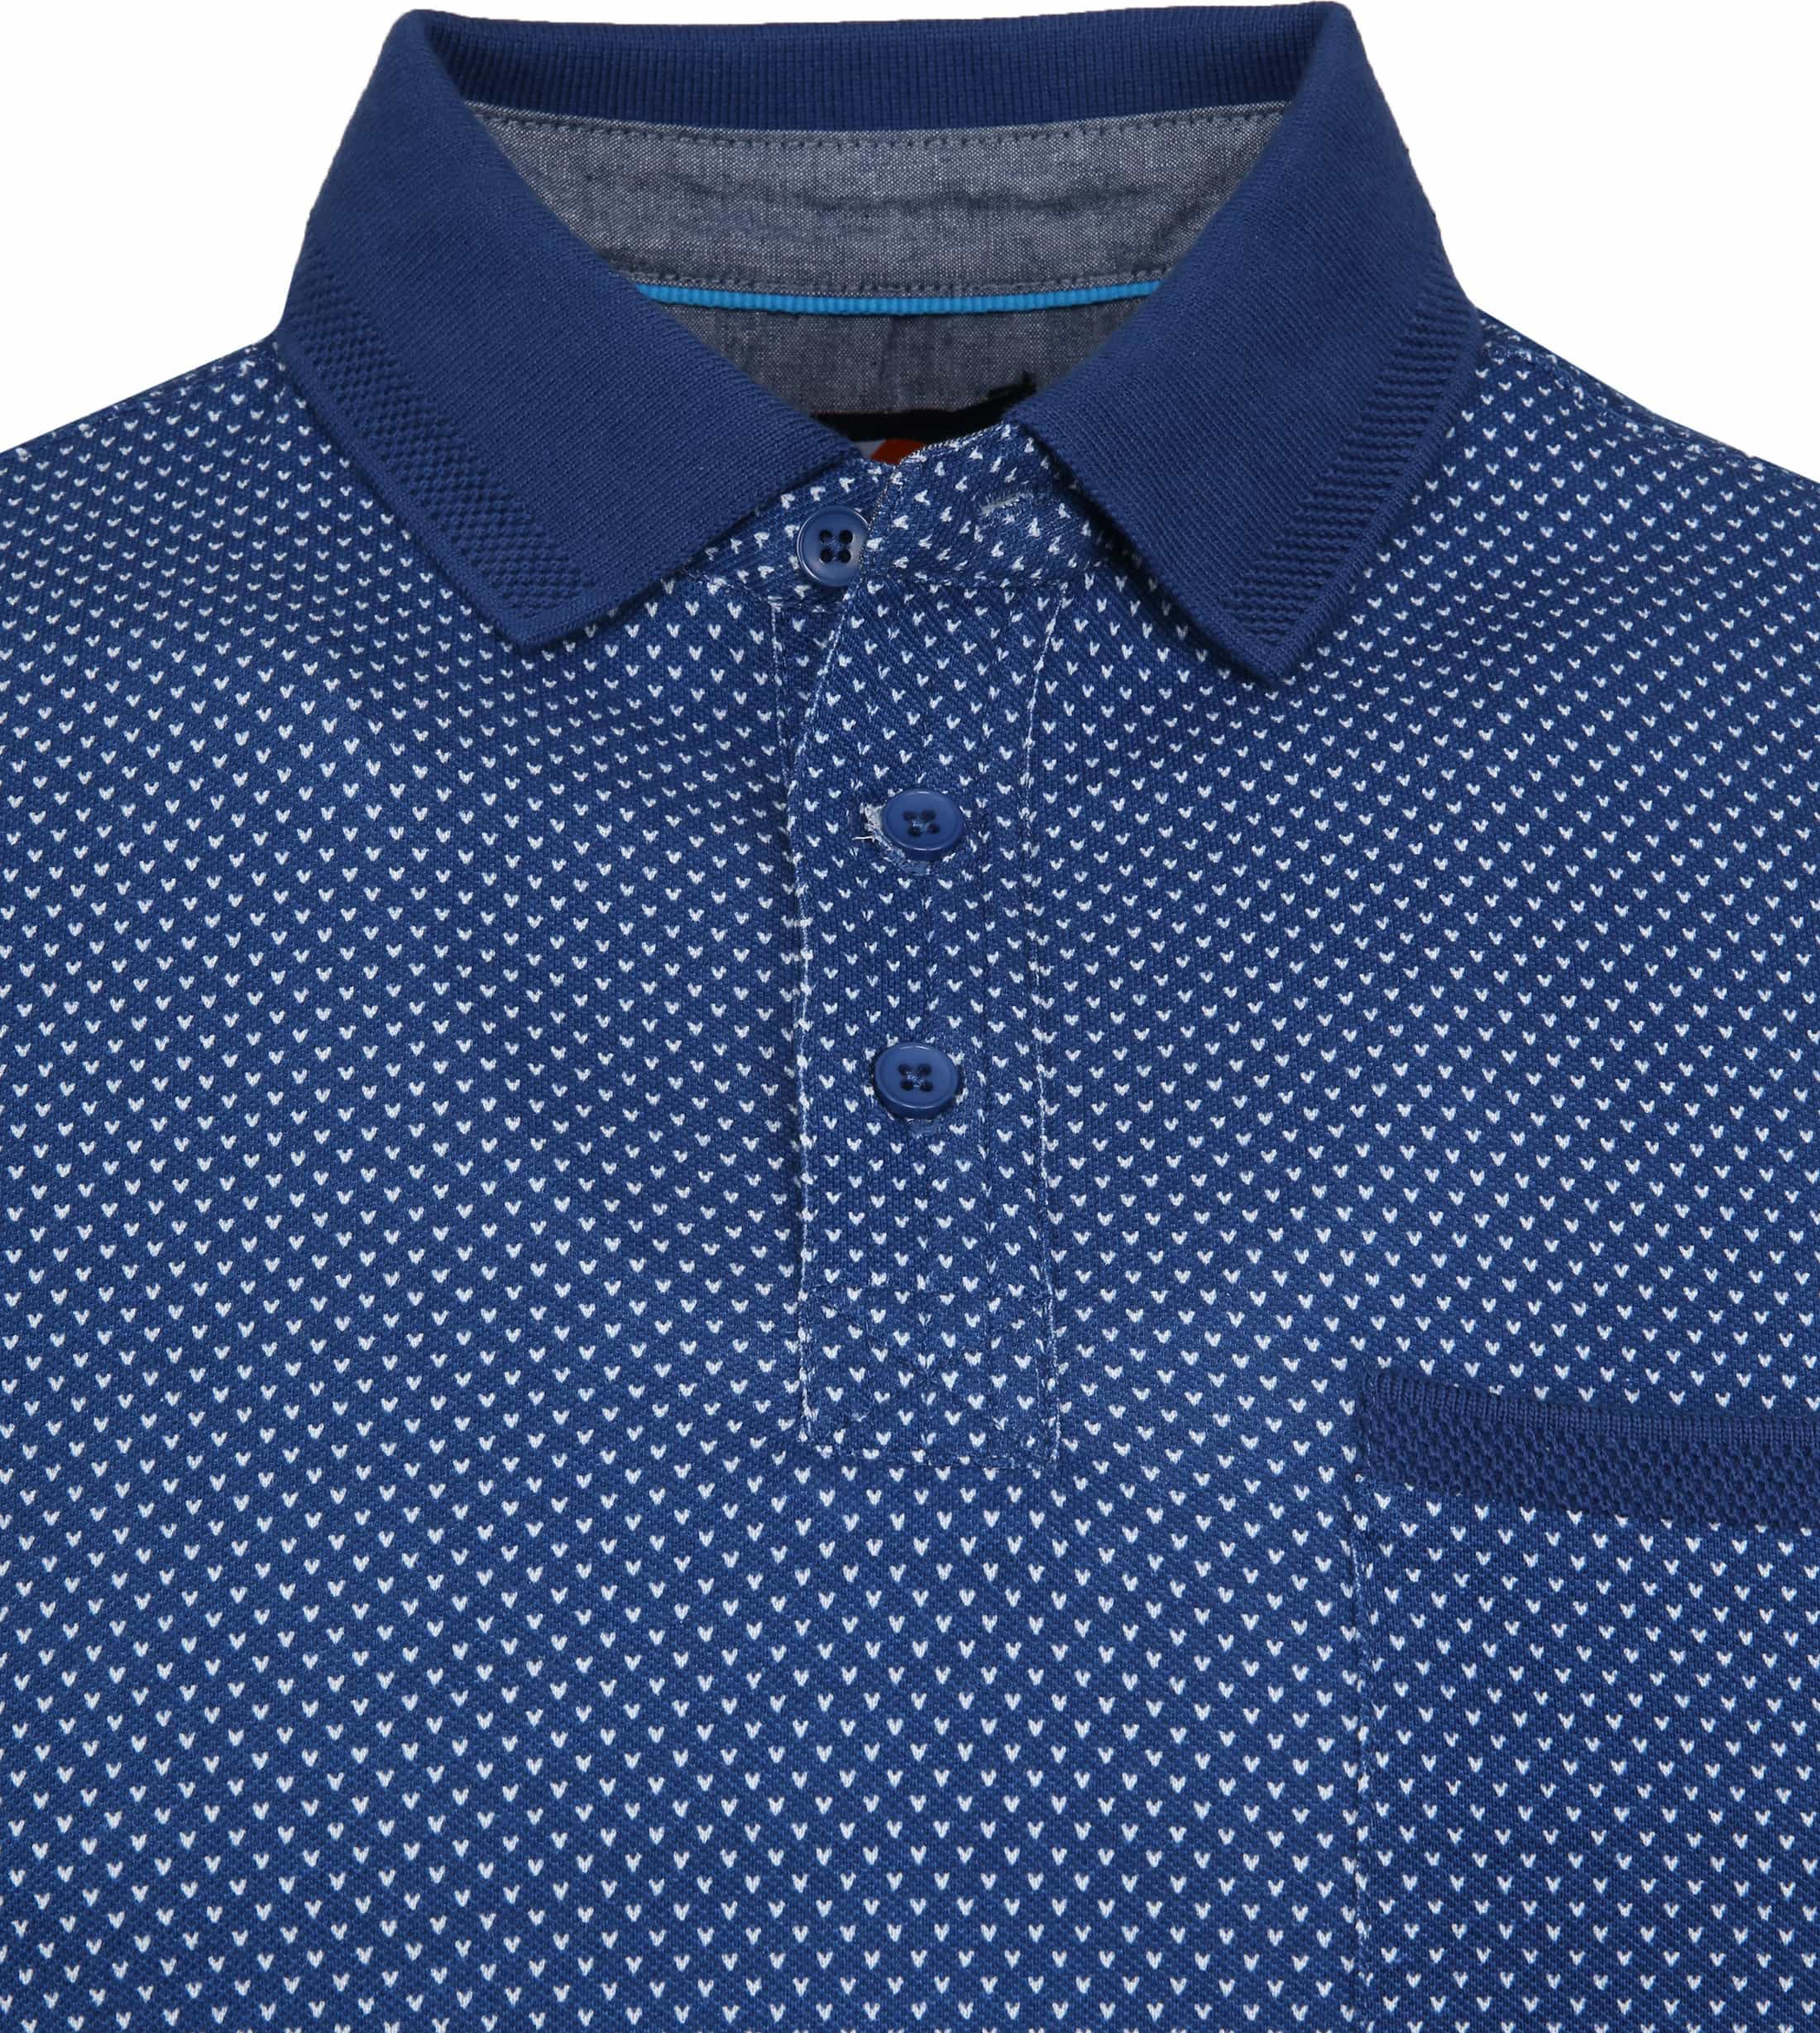 Suitable Till Poloshirt Dessin Blue foto 1